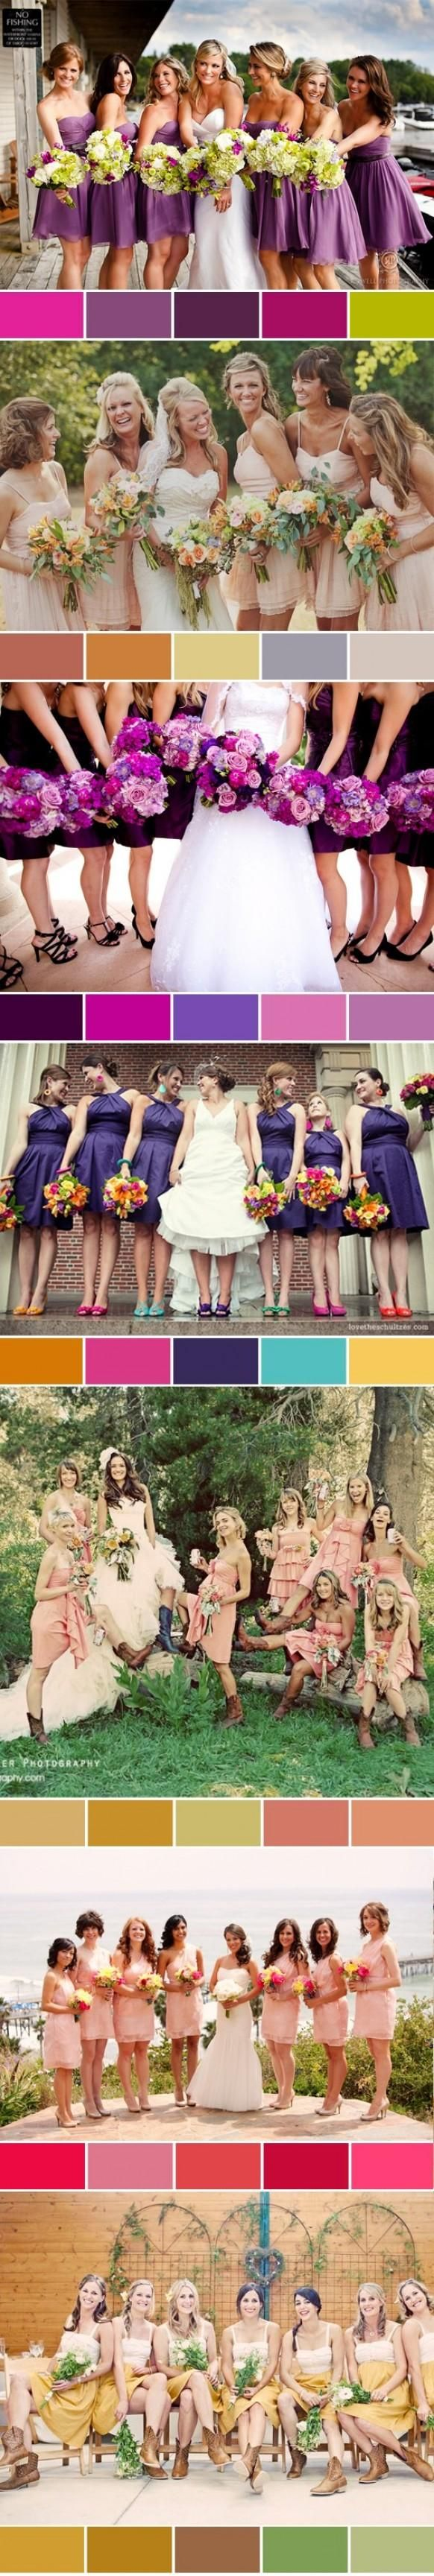 Weddbook is a content discovery engine mostly specialized on wedding concept. You can collect images, videos or articles you discovered  organize them, add your own ideas to your collections and share with other people - wedding color schemes